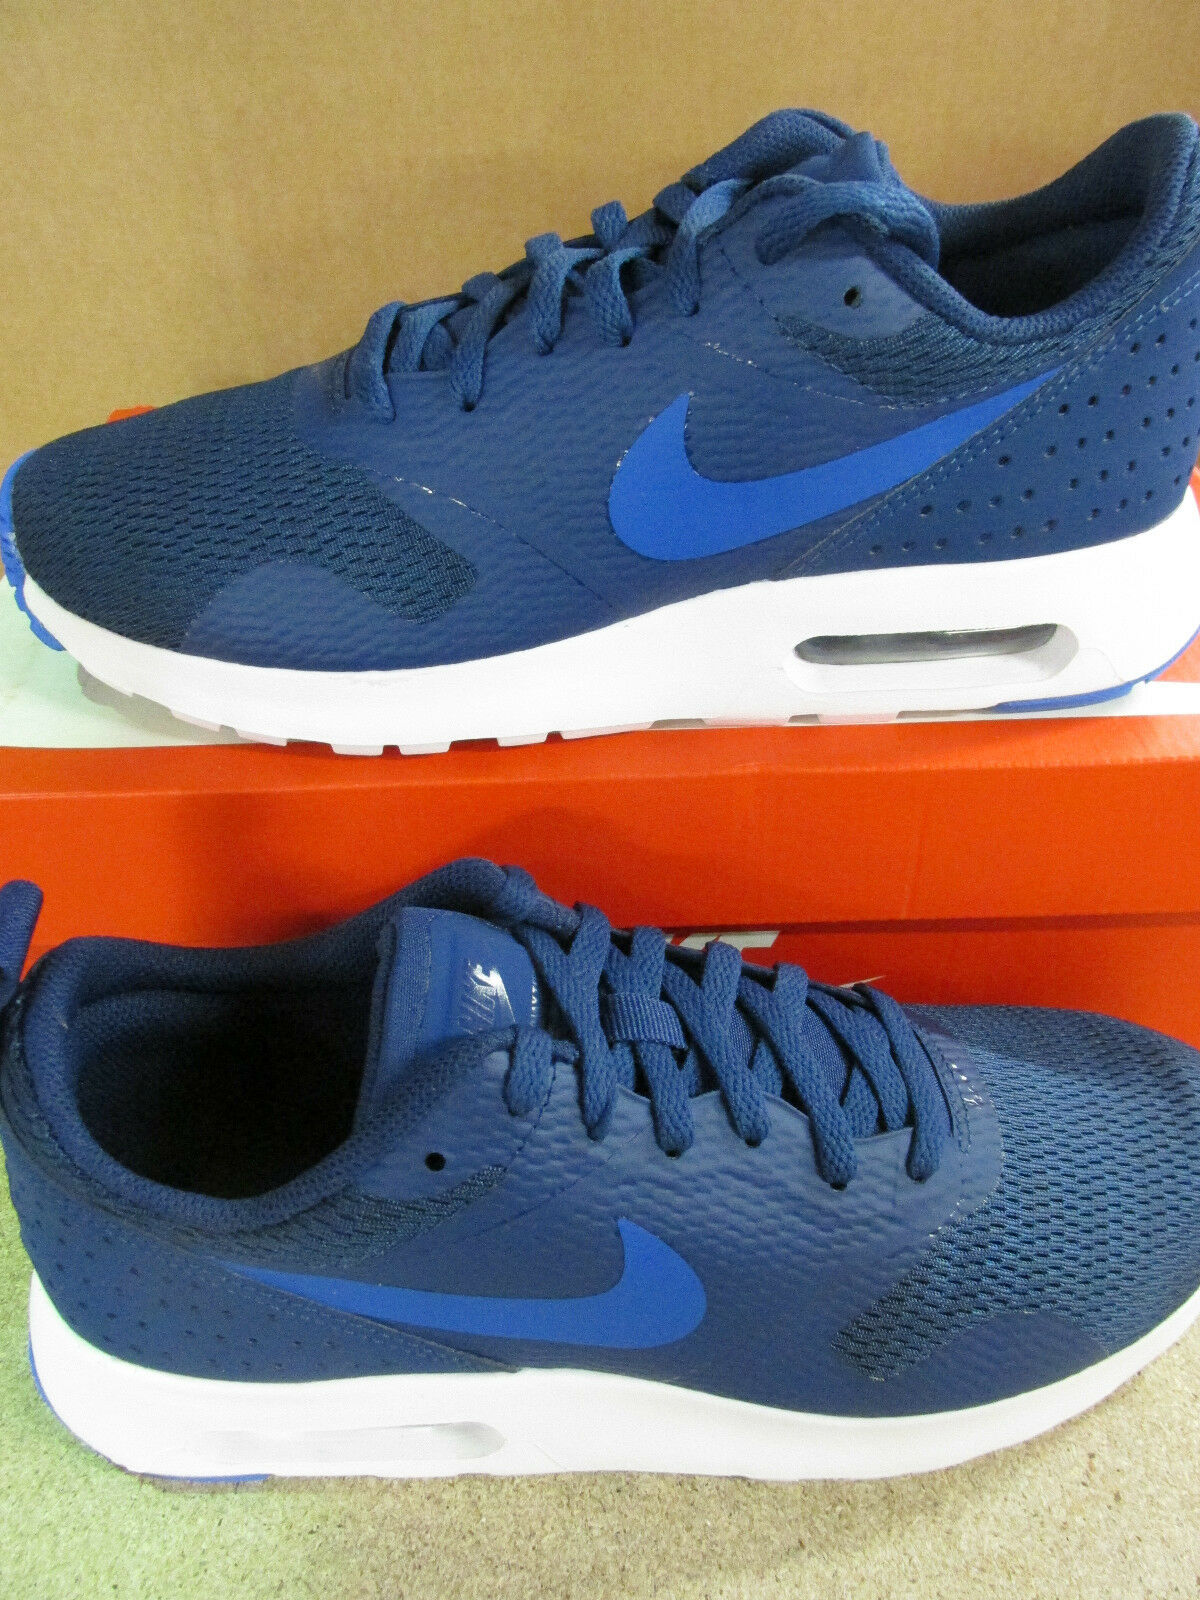 nike air max tavas tavas tavas Hombre running trainers 705149 403 sneakers Zapatos bb1891